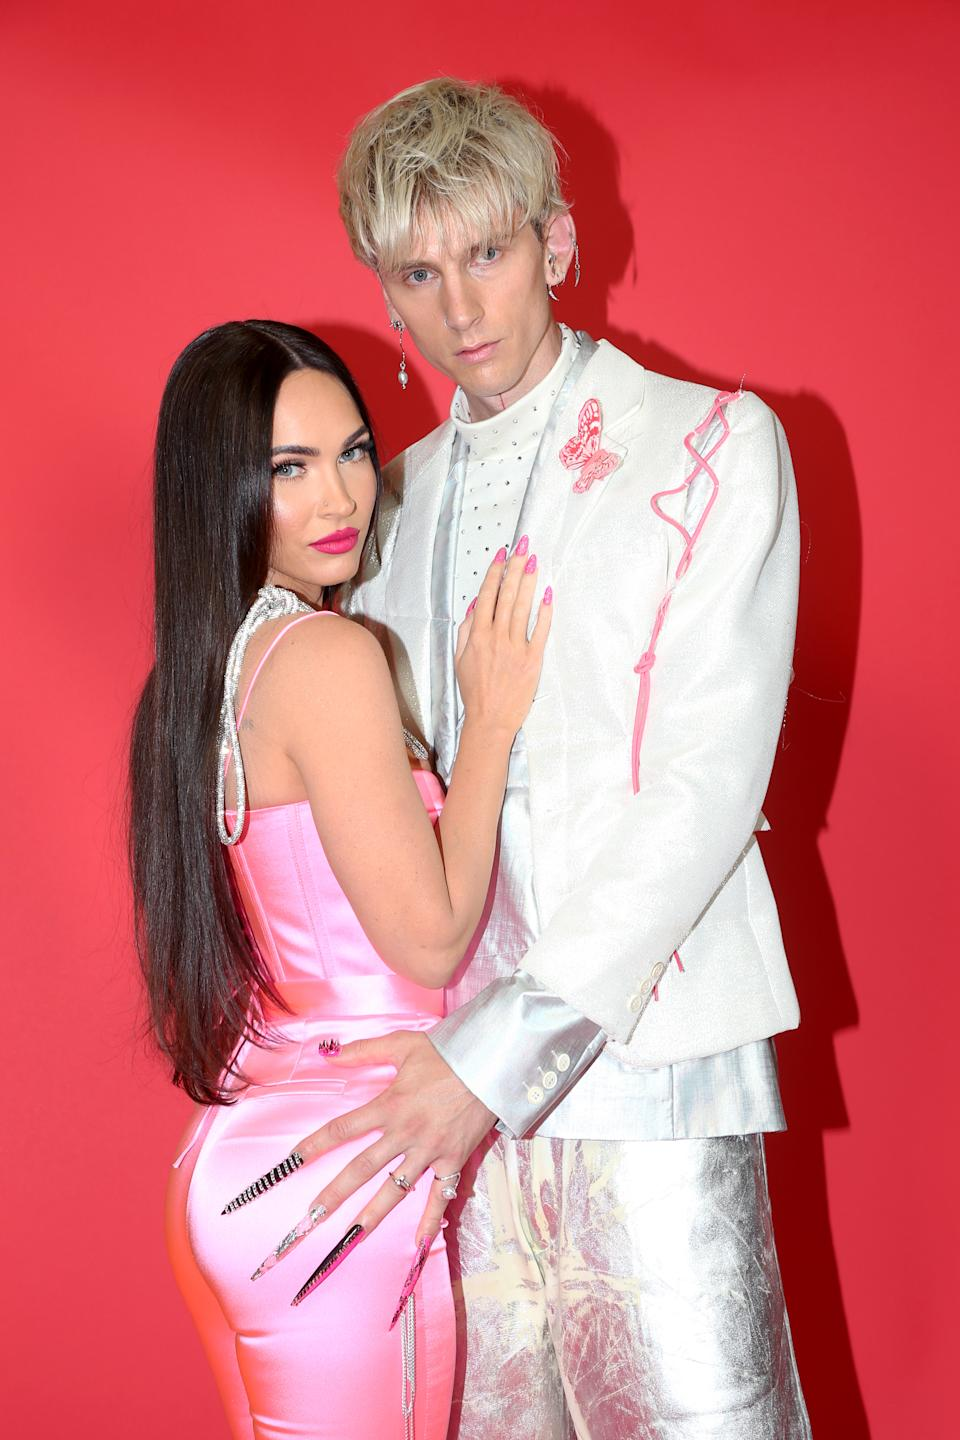 LOS ANGELES, CALIFORNIA - MAY 27: (EDITORIAL USE ONLY) (L-R) Megan Fox and Machine Gun Kelly attend the 2021 iHeartRadio Music Awards at The Dolby Theatre in Los Angeles, California, which was broadcast live on FOX on May 27, 2021. (Photo by Phillip Faraone/Getty Images for iHeartMedia)